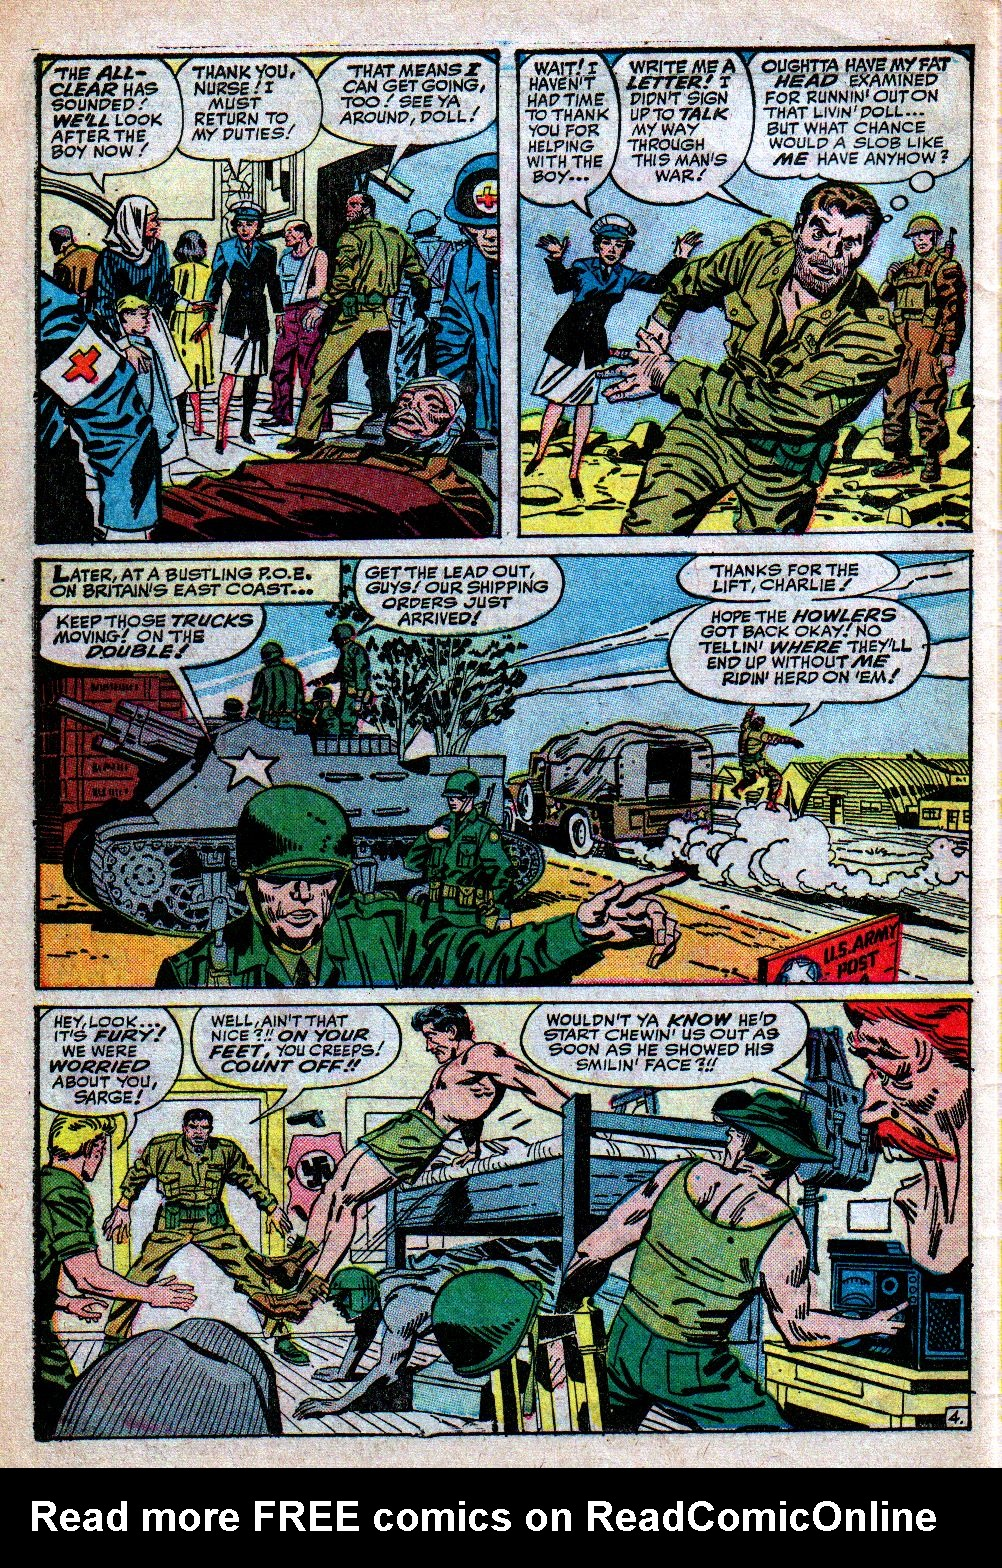 Read online Sgt. Fury comic -  Issue #4 - 6